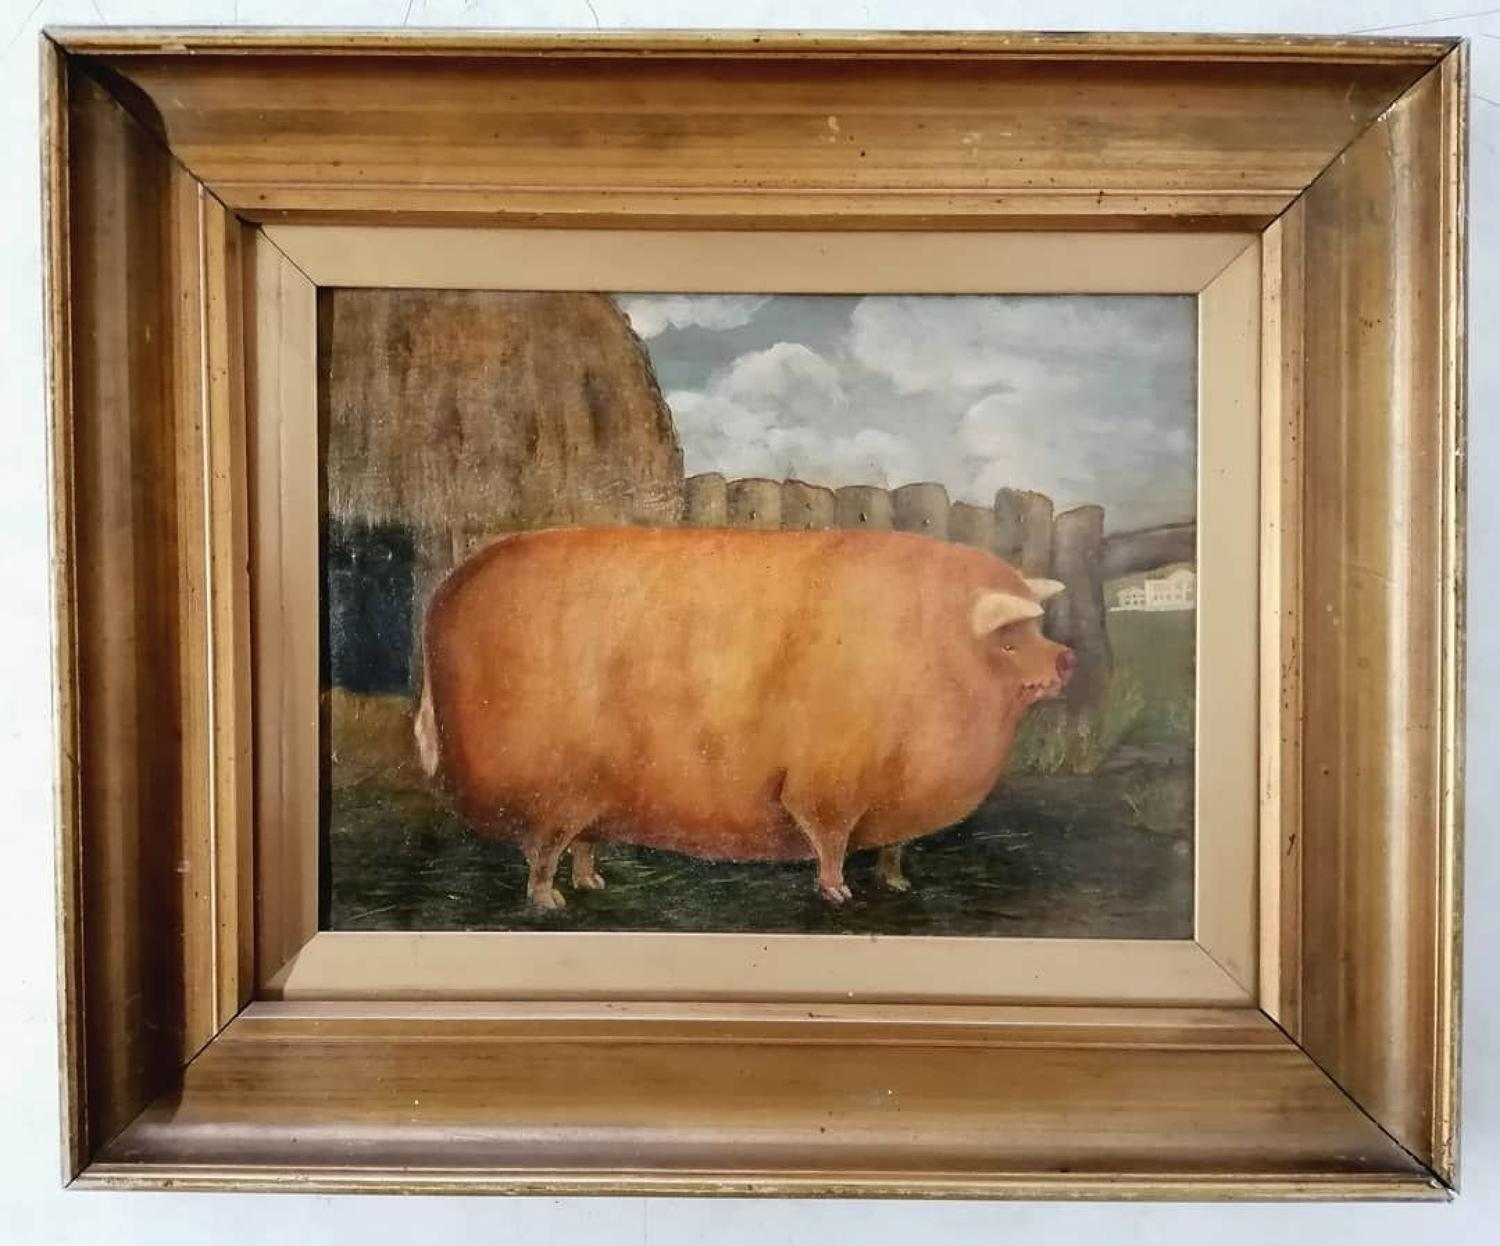 19th Century Primitive Prize Pig